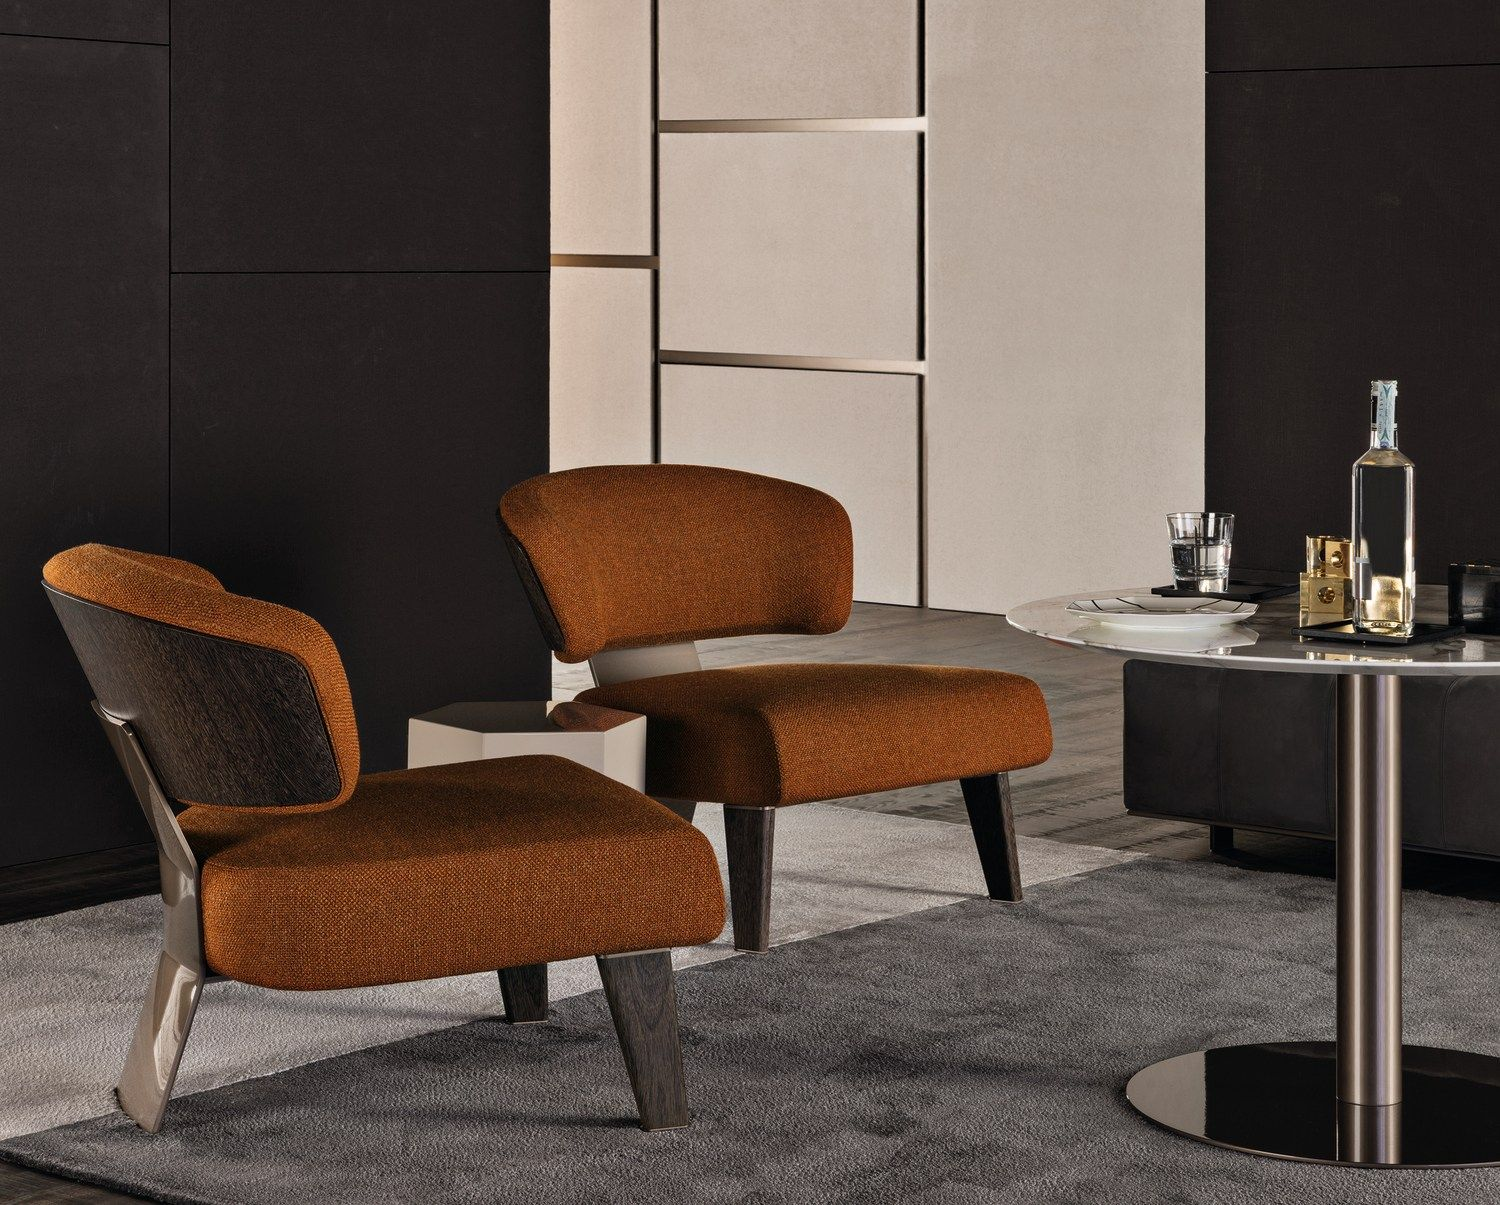 Minotti Creed Easy Chair   Google Search